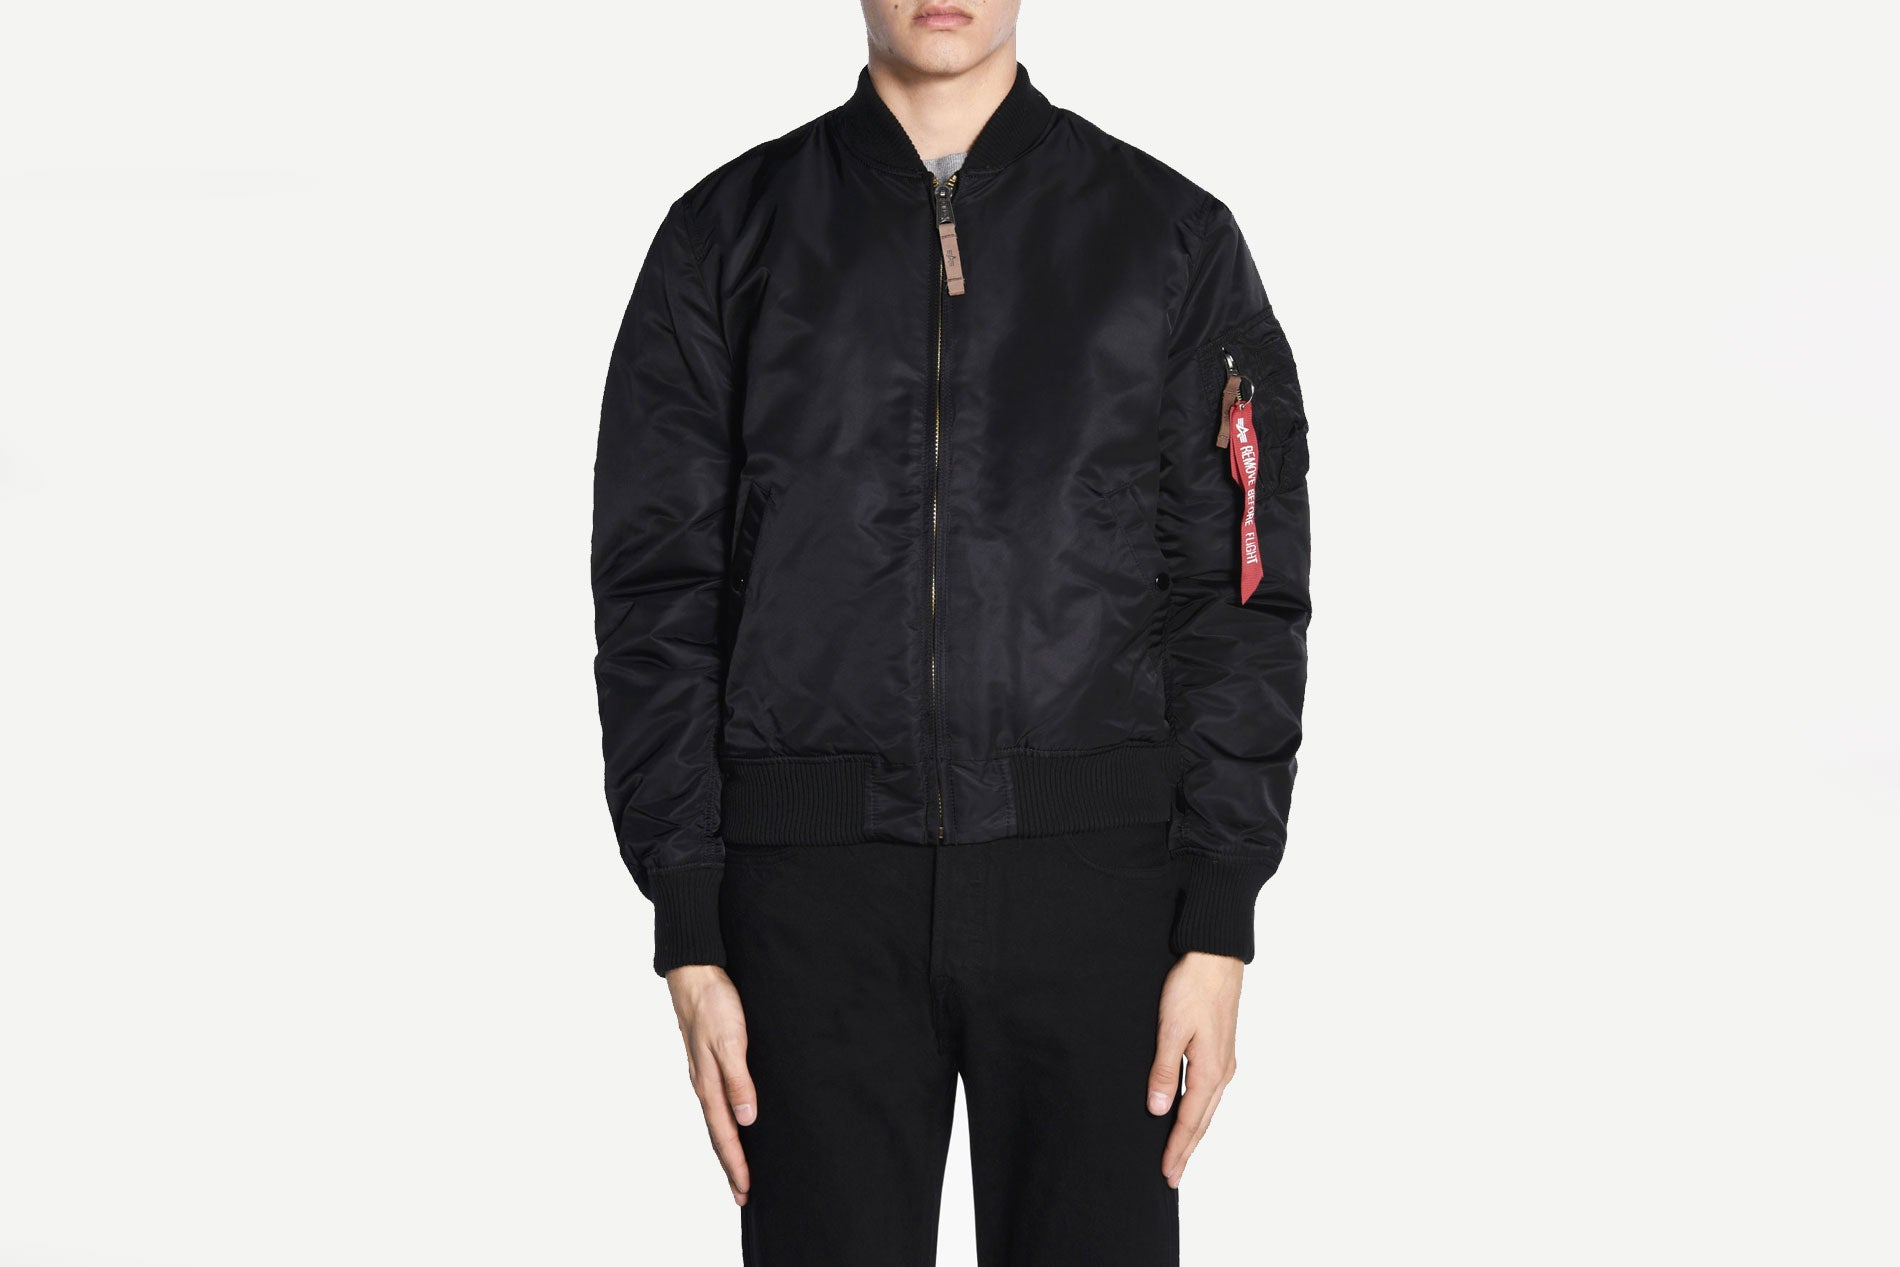 Alpha Industries - 168100 MA-1 VF 59 LONG JKT Bomber Winter Jacket (Black)